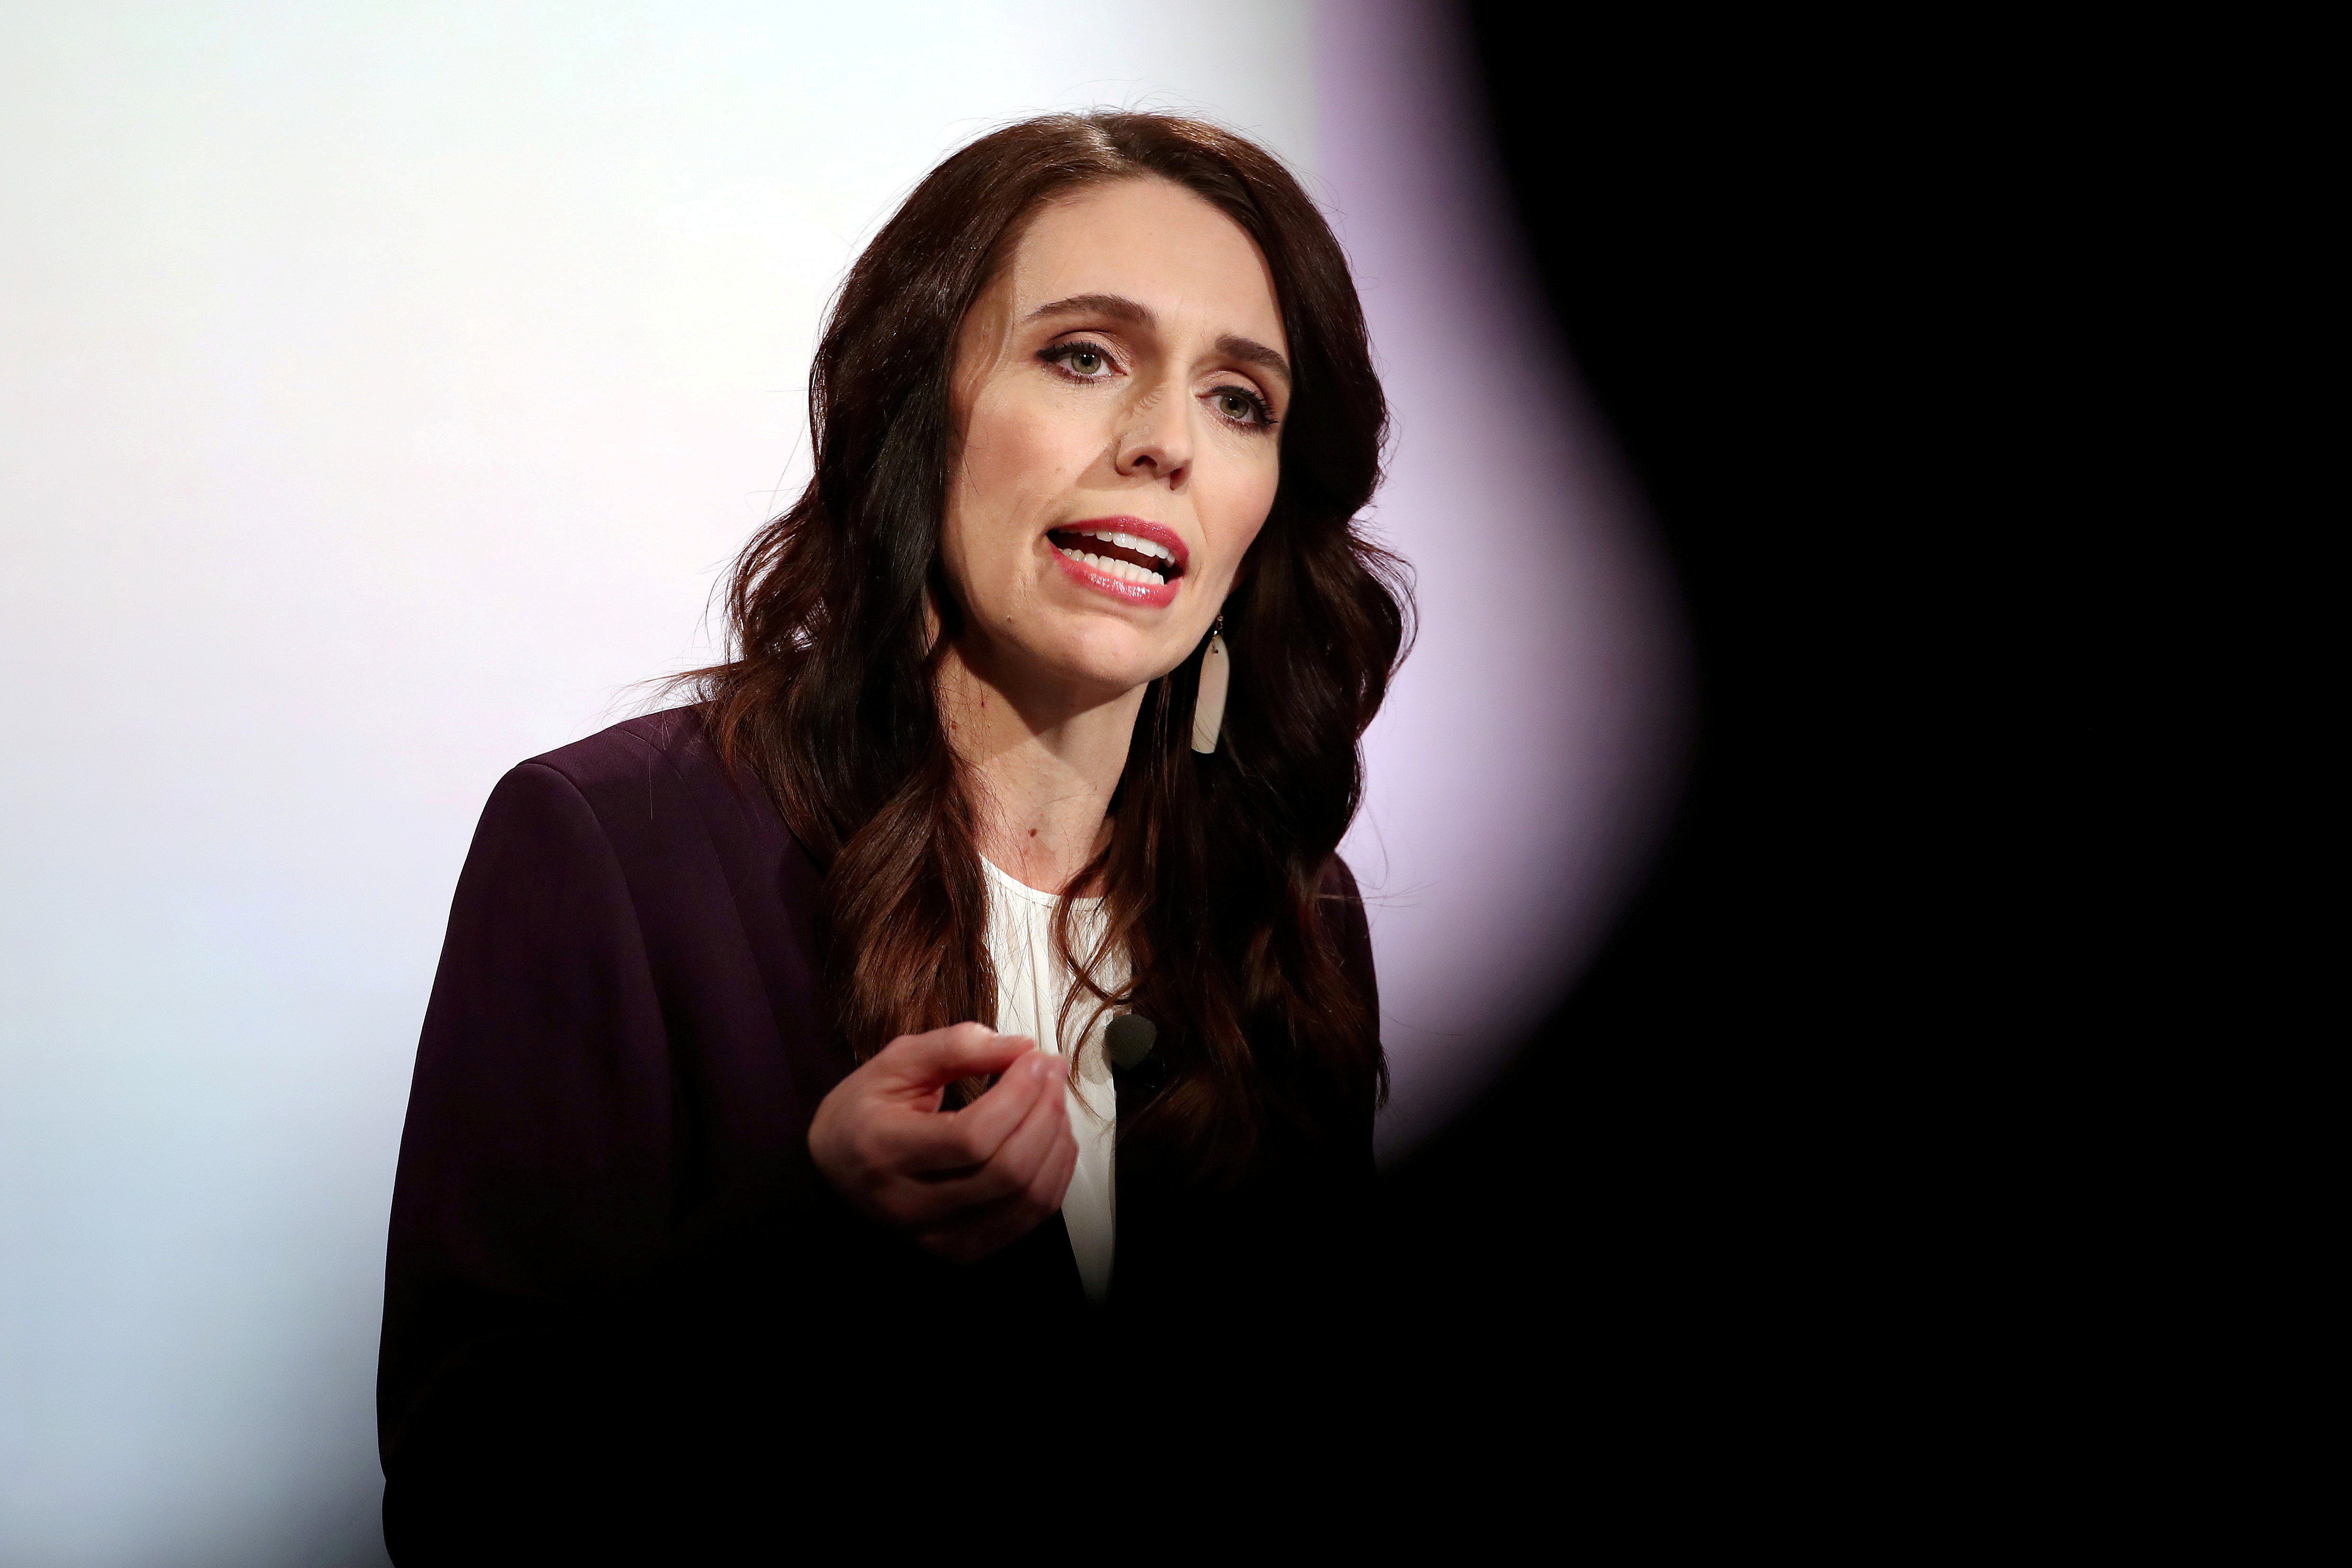 New Zealand Prime Minister Jacinda Ardern participates in a televised debate with National leader Judith Collins at TVNZ in Auckland, New Zealand, September 22, 2020.  Fiona Goodall/Pool via REUTERS/File Photo